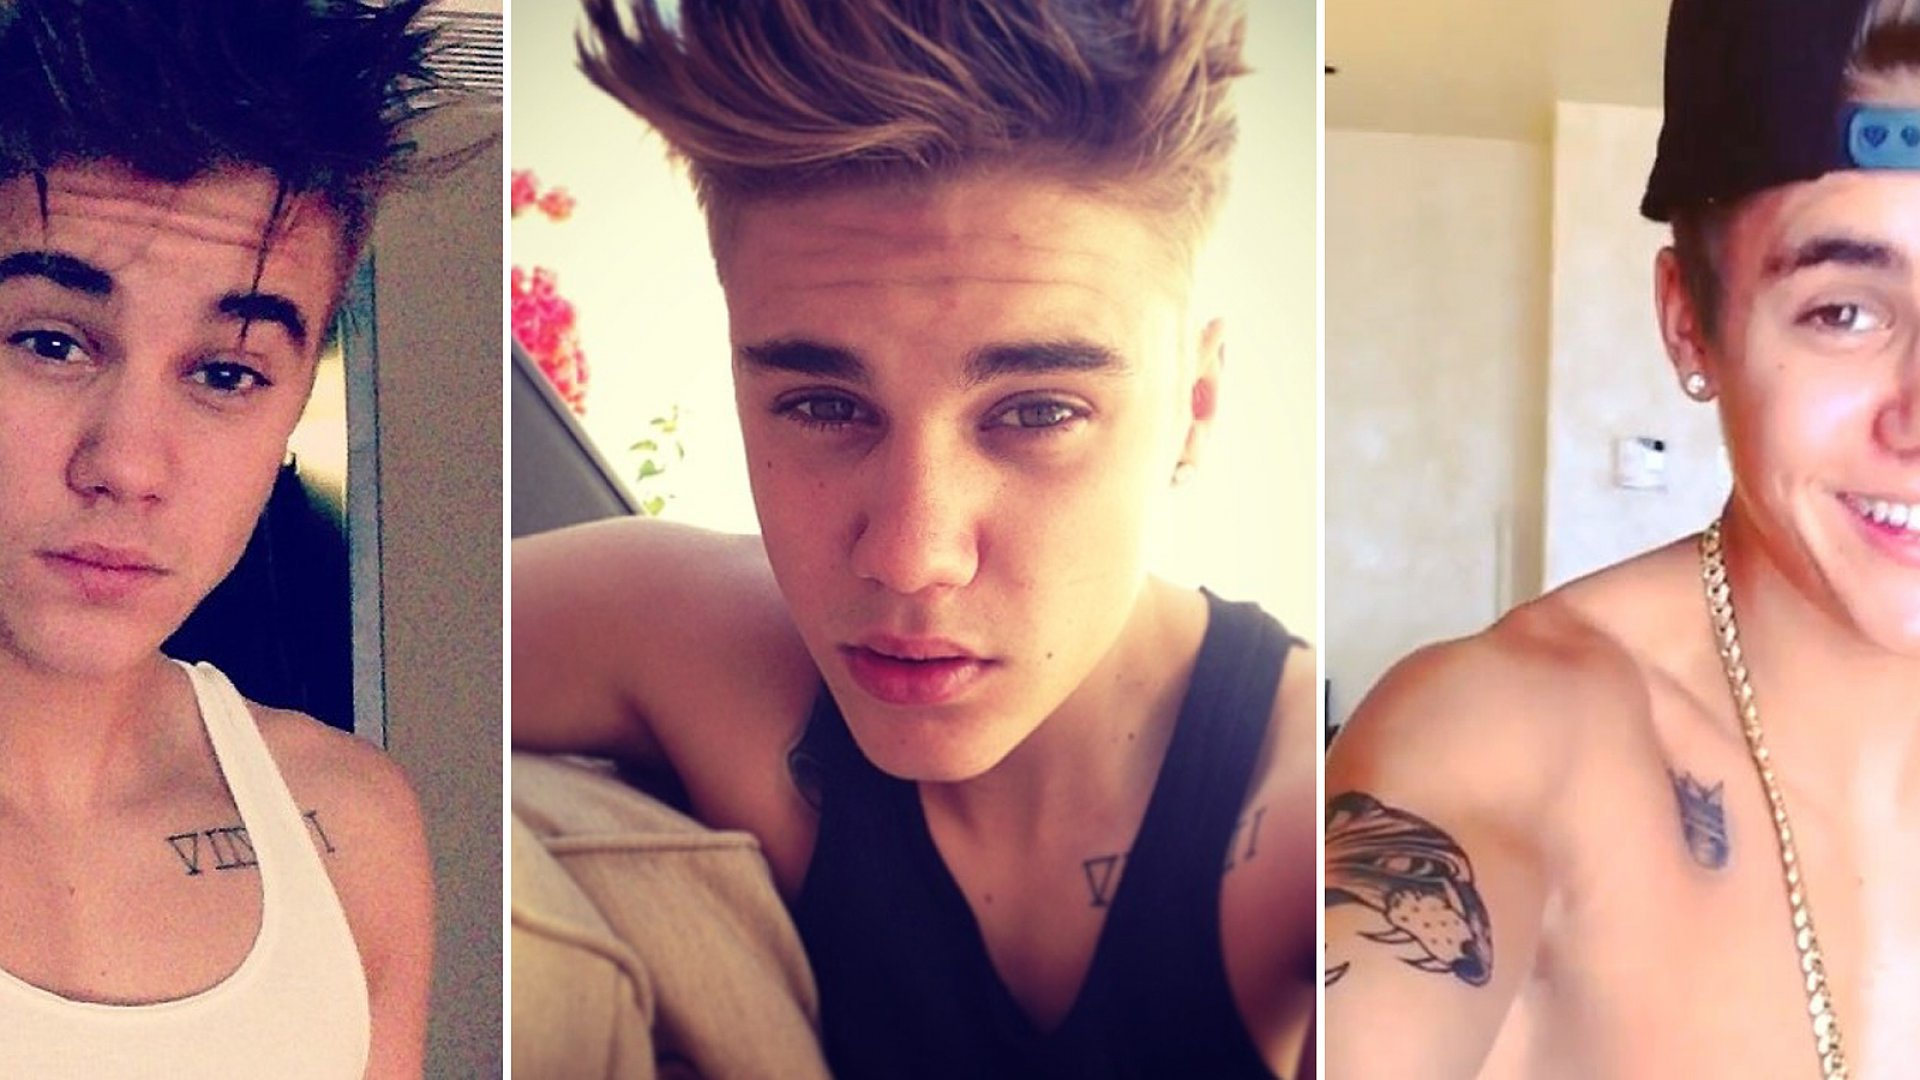 Belieb It: With Launch of Selfie-App, Justin Bieber Becomes Start-Up Investor